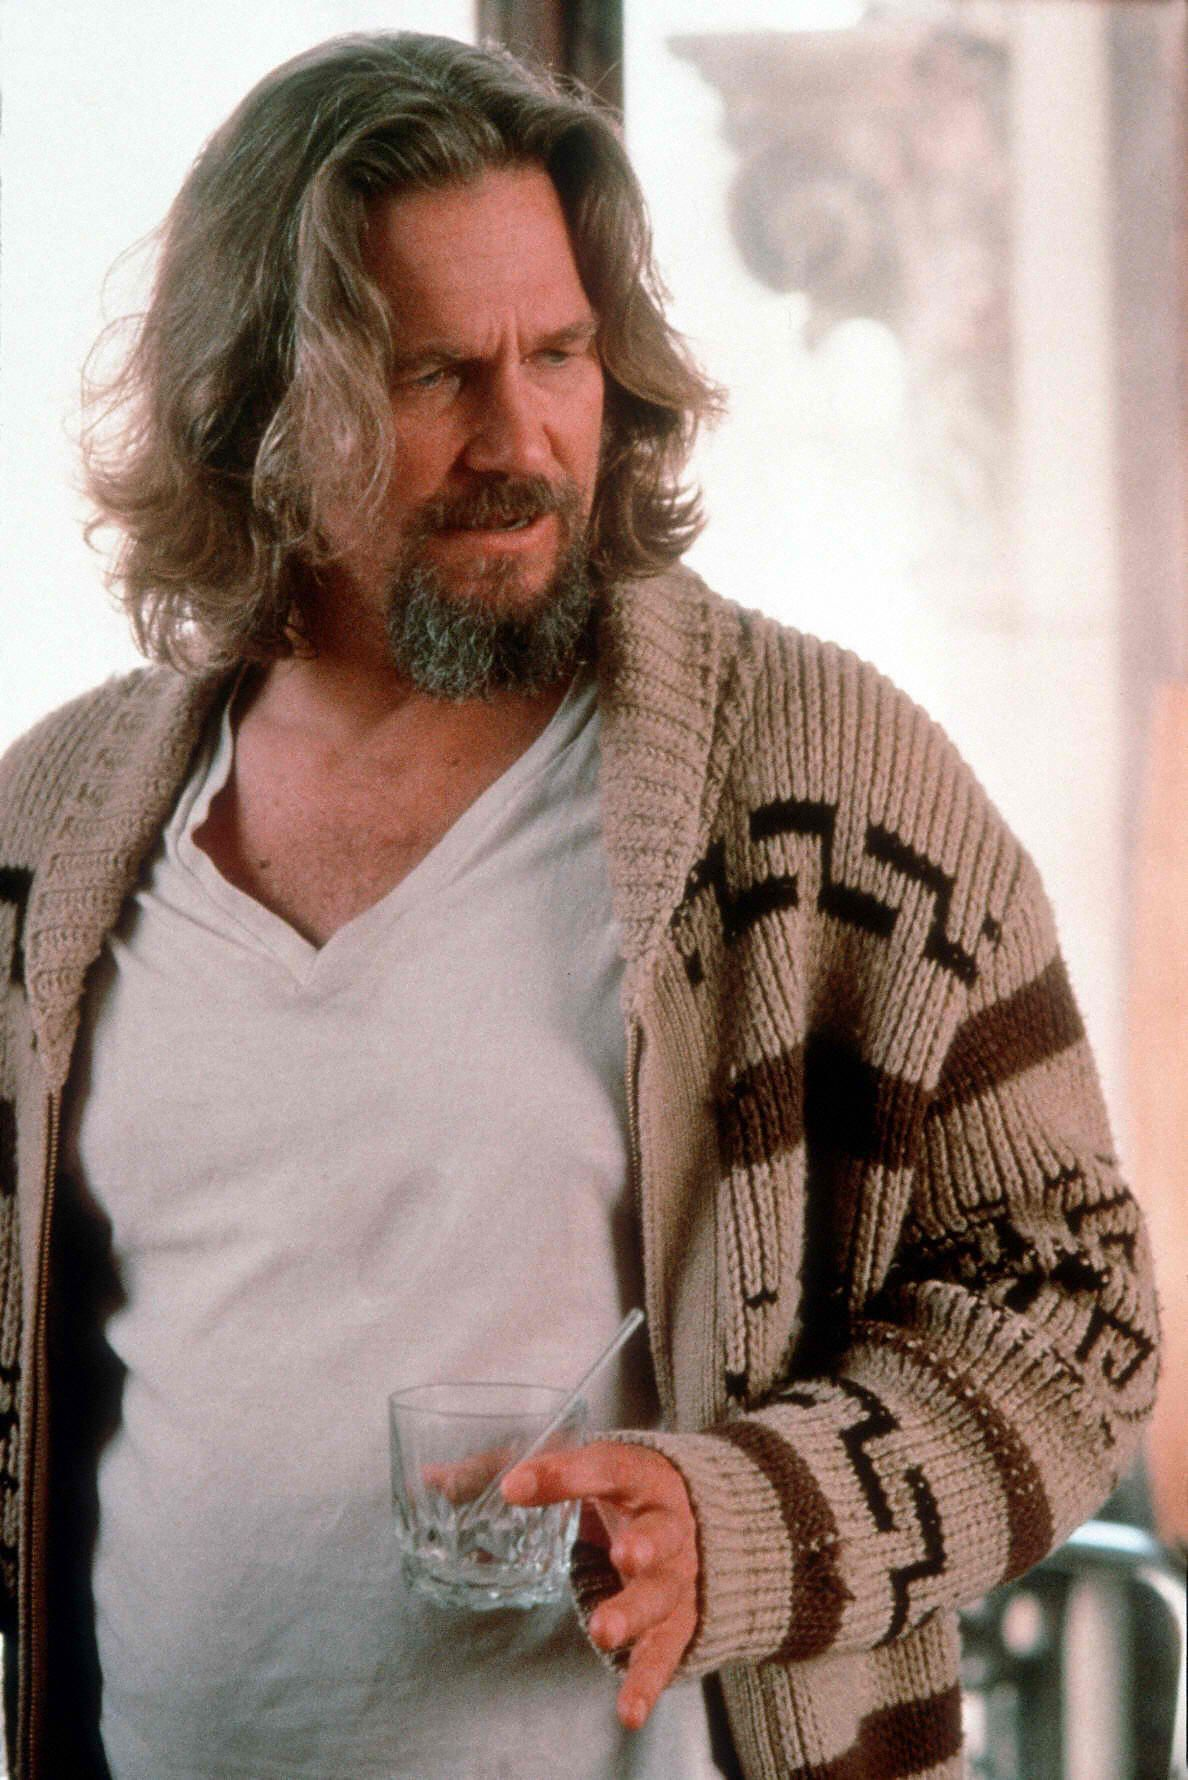 The Big Lebowski + White Russians= The Dude